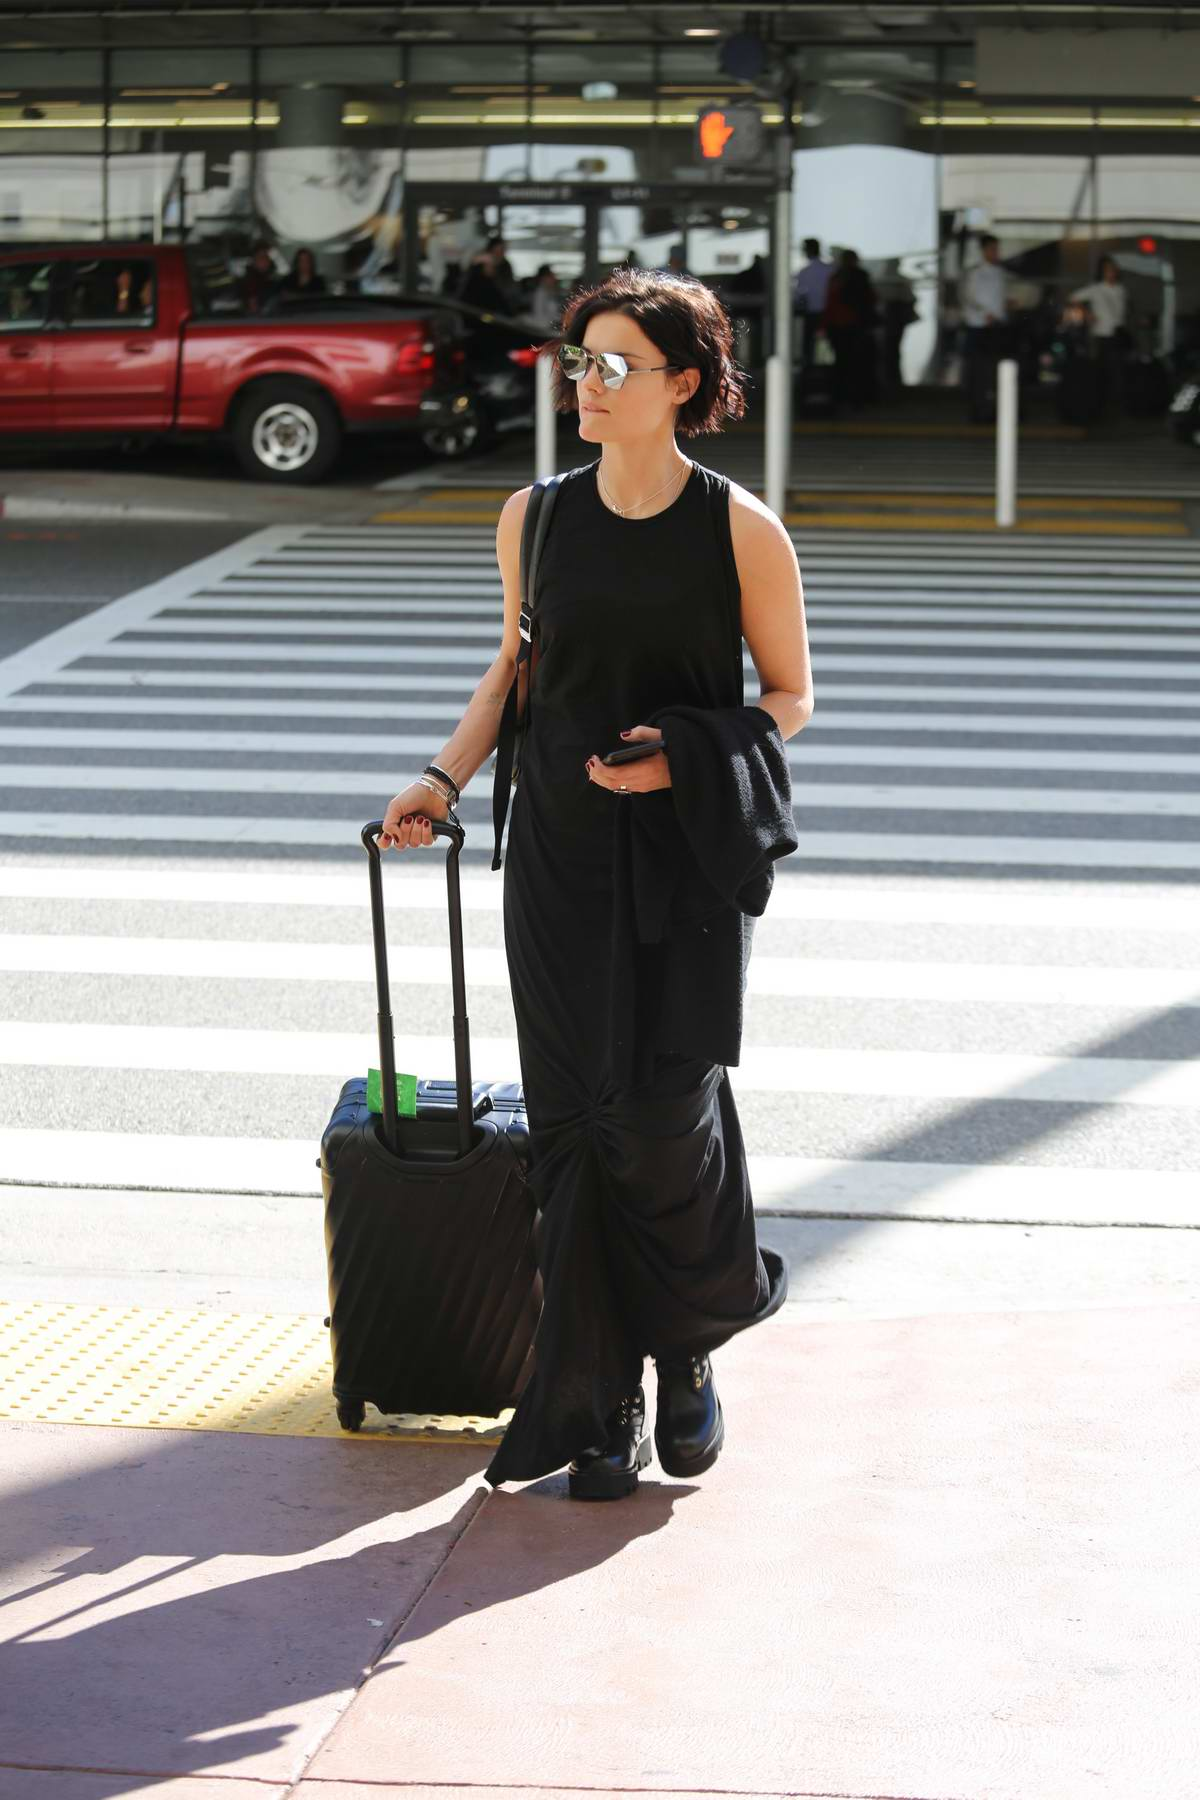 Jaimie Alexander dressed in all black as she arrives at LAX airport in Los Angeles